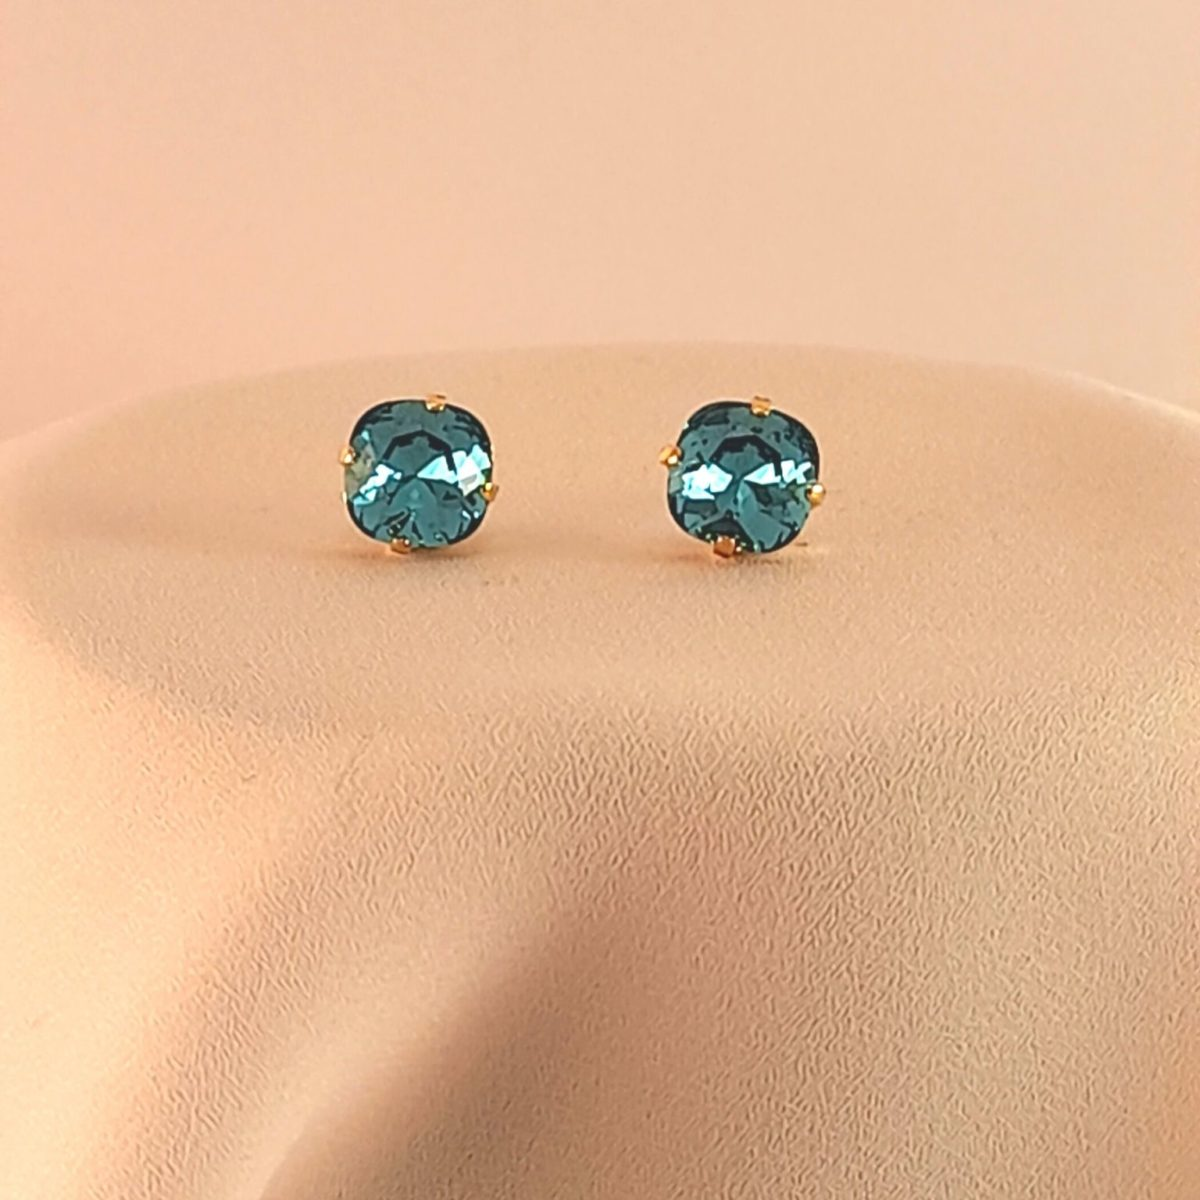 Stud Earrings With A Turquoise Stone